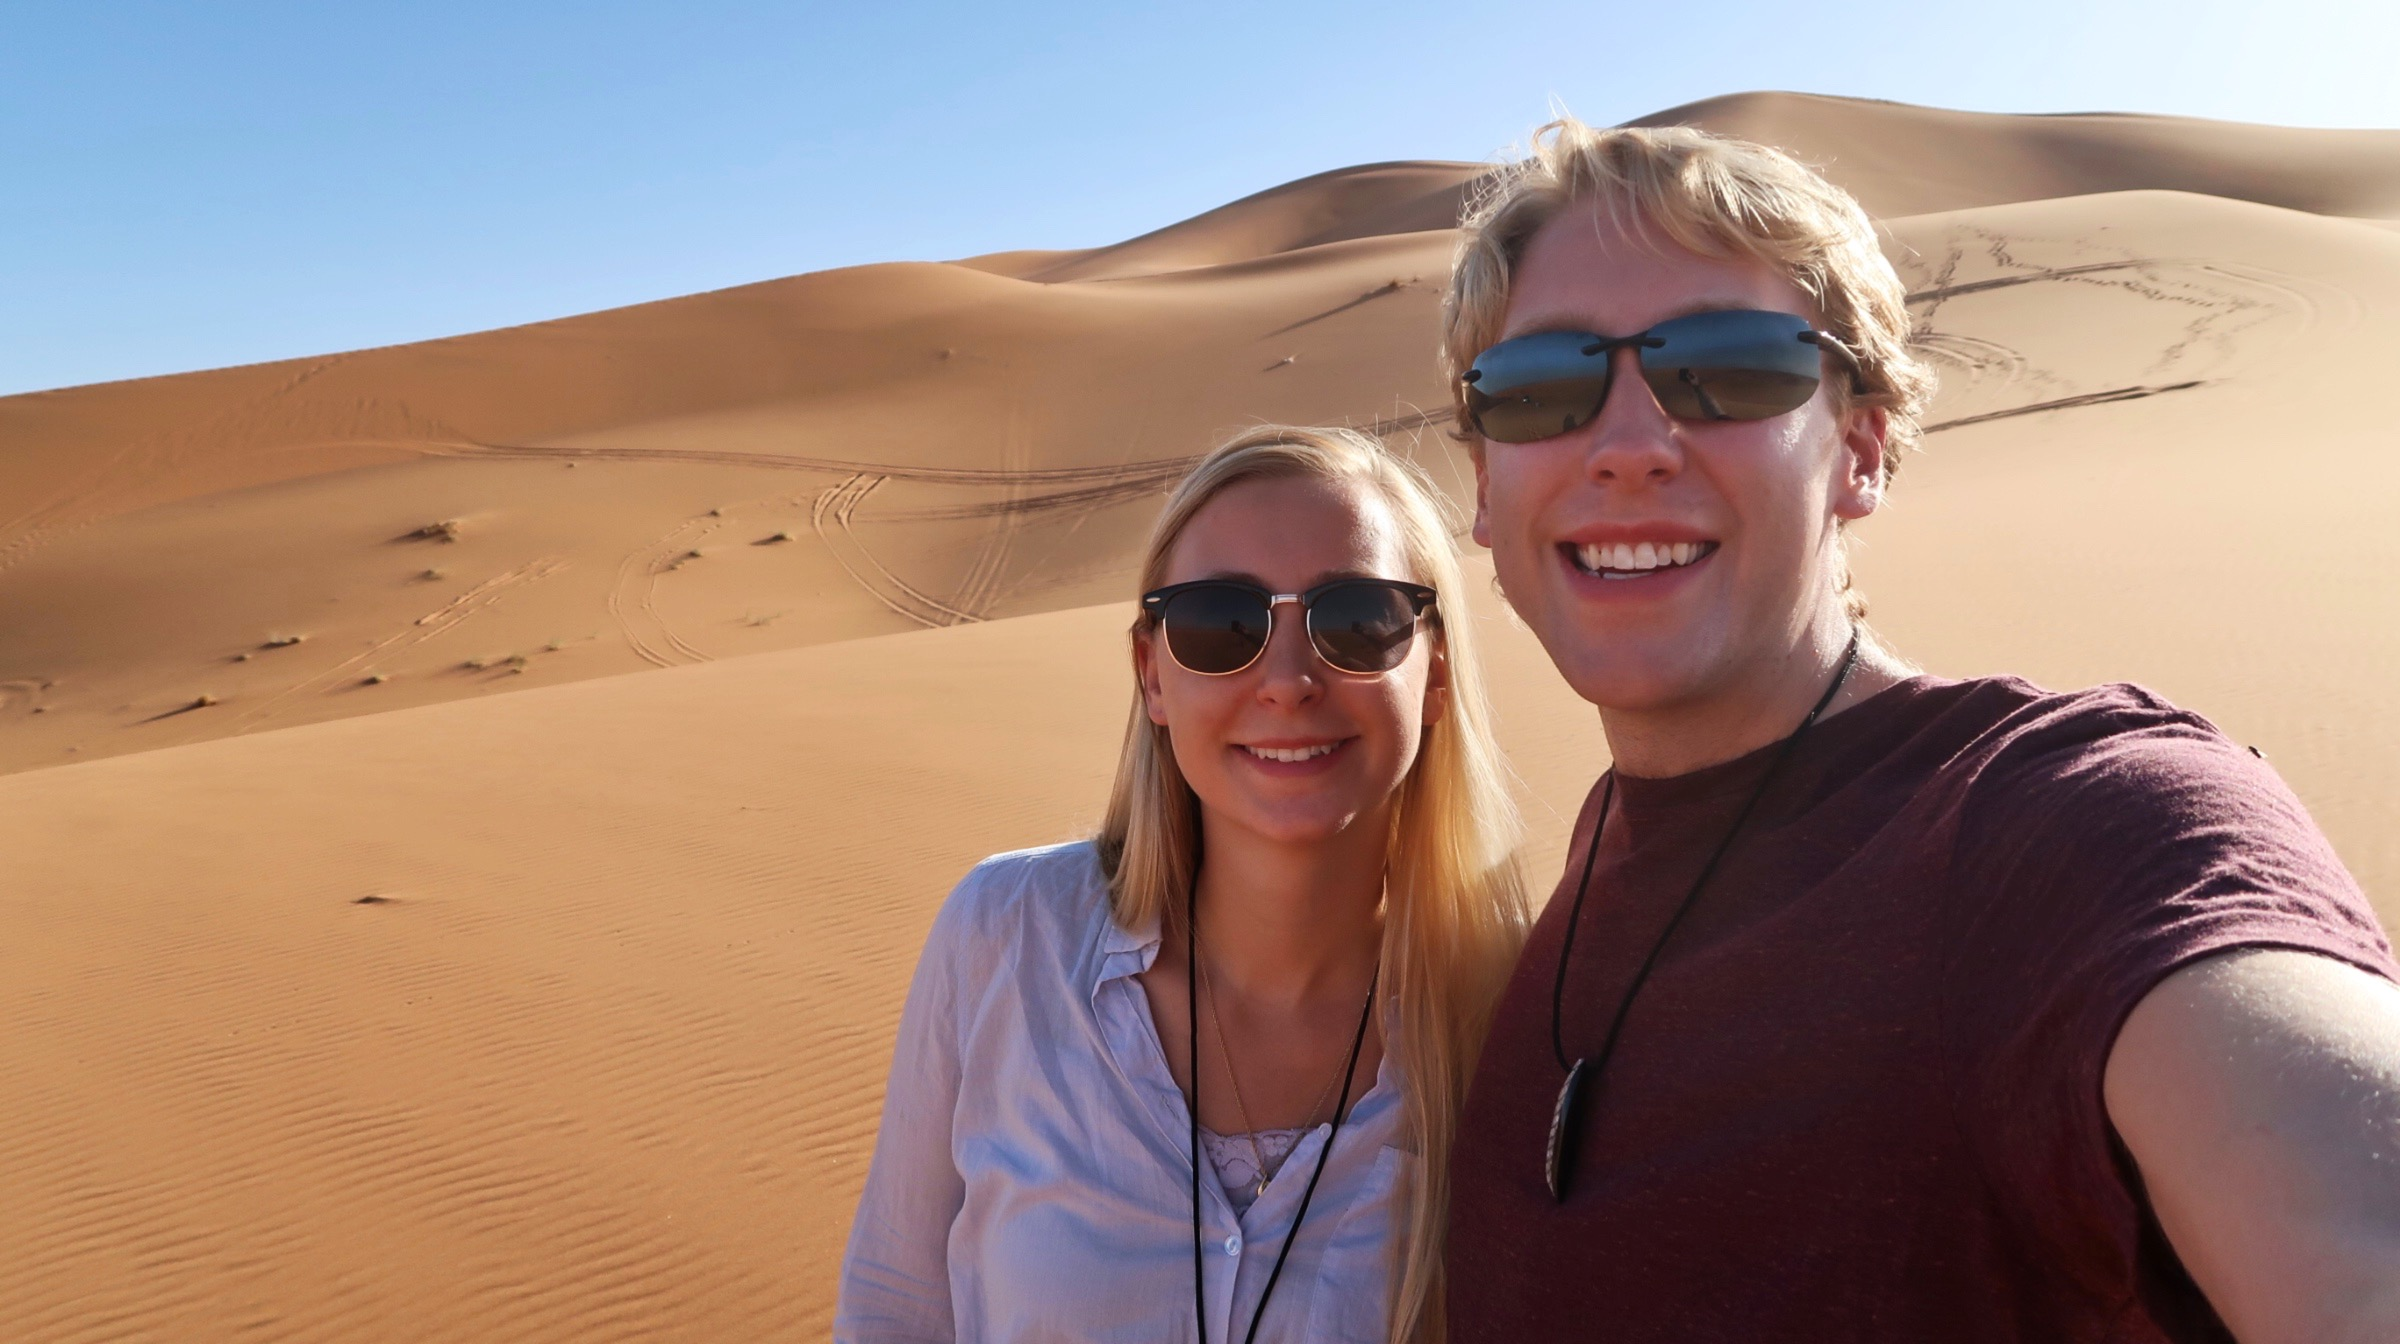 A COUPLE ON A JOURNEY   Follow Shelby & Alexander on their whirlwind honeymoon, touring the world in 9 months